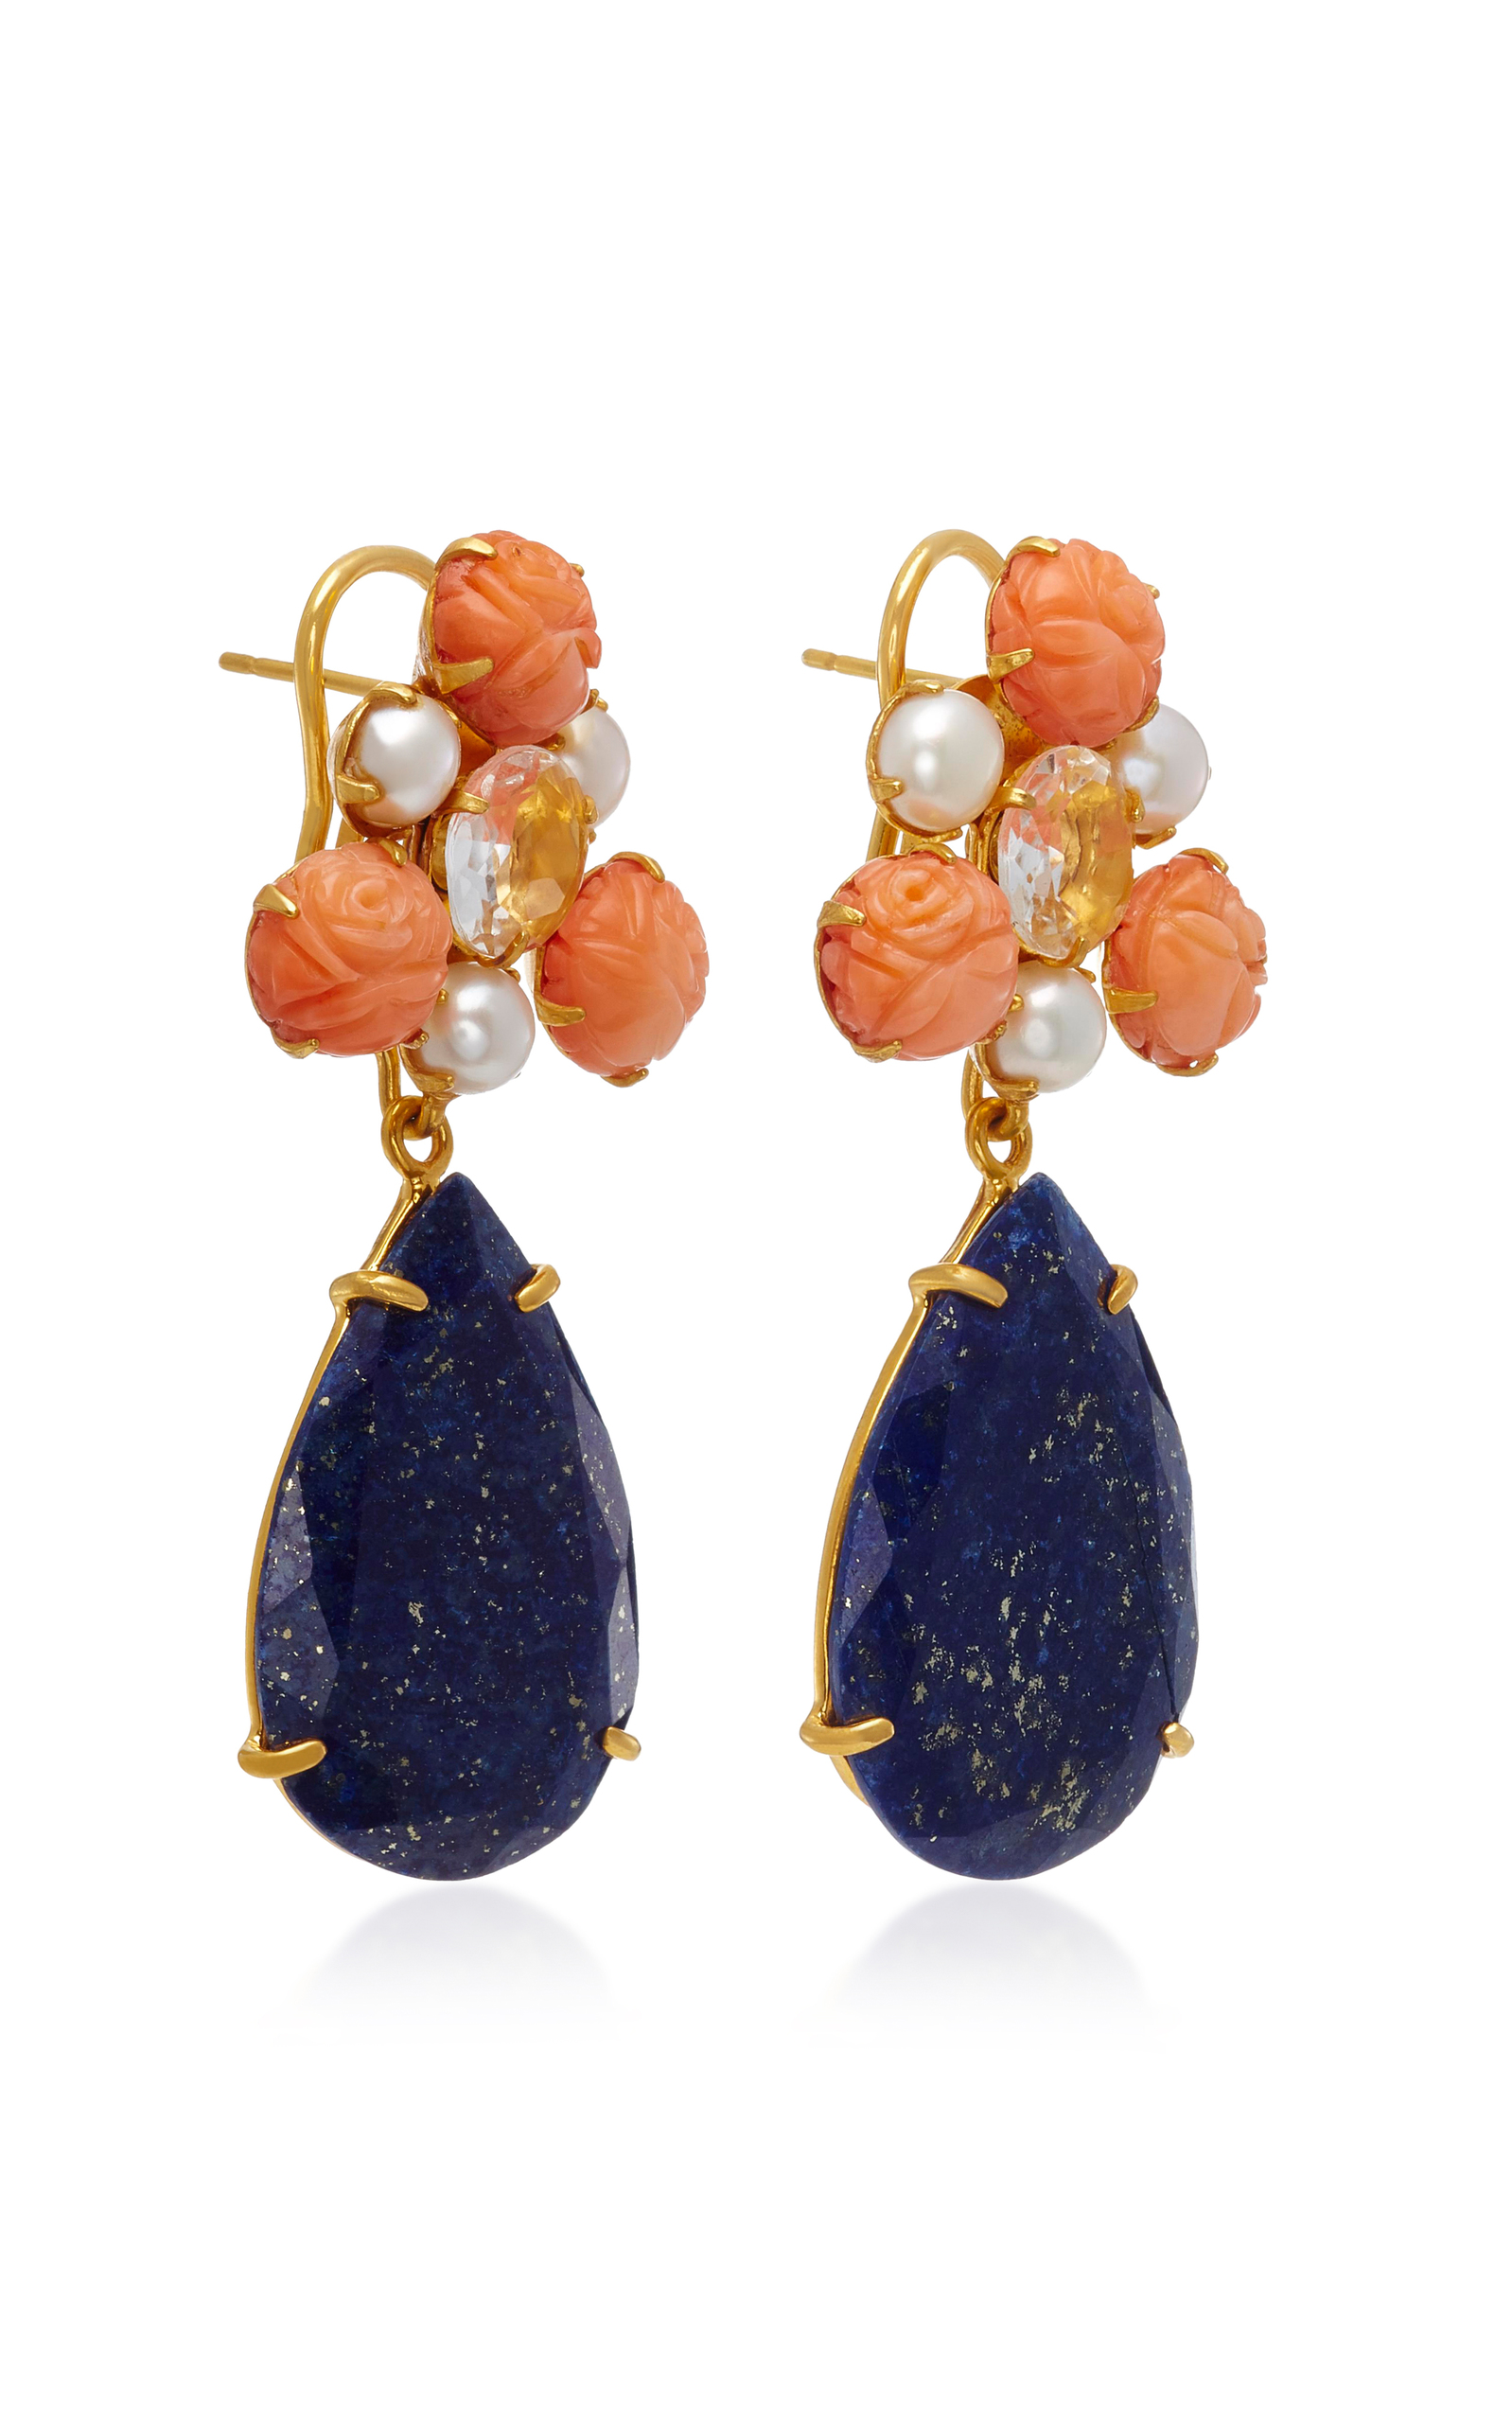 Gold-Plated Carved Bamboo Coral Pearl Clear Quartz and Lapis Earrings Bounkit 6Jt6iug41